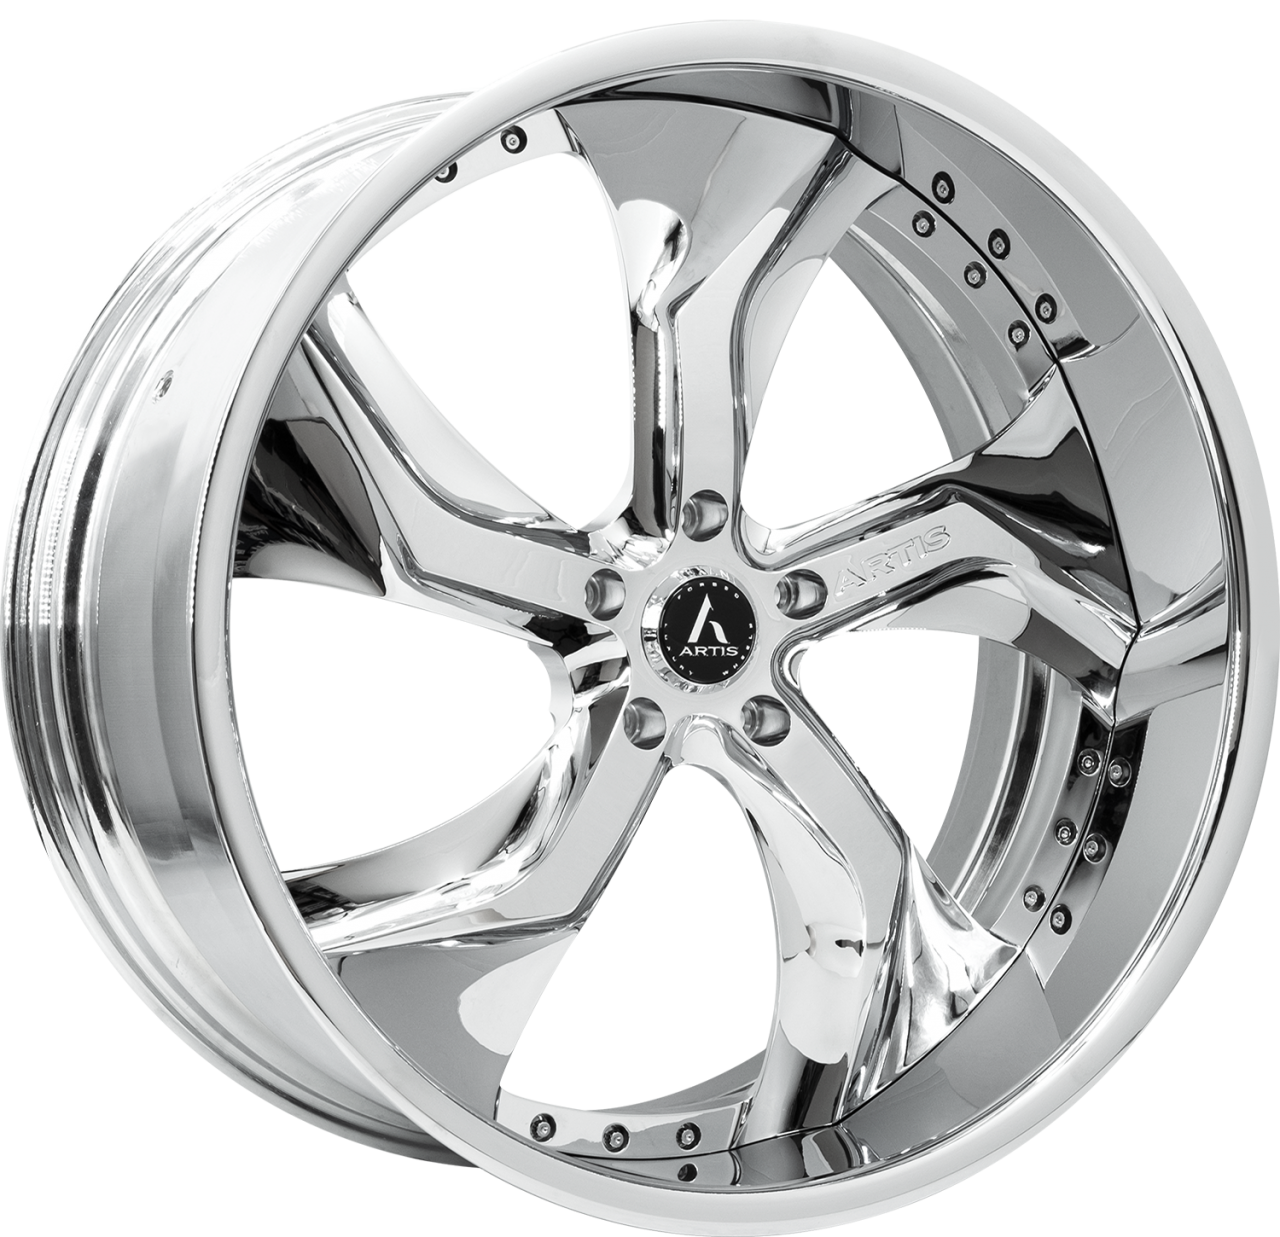 Artis Forged Bully wheel with Chrome finish